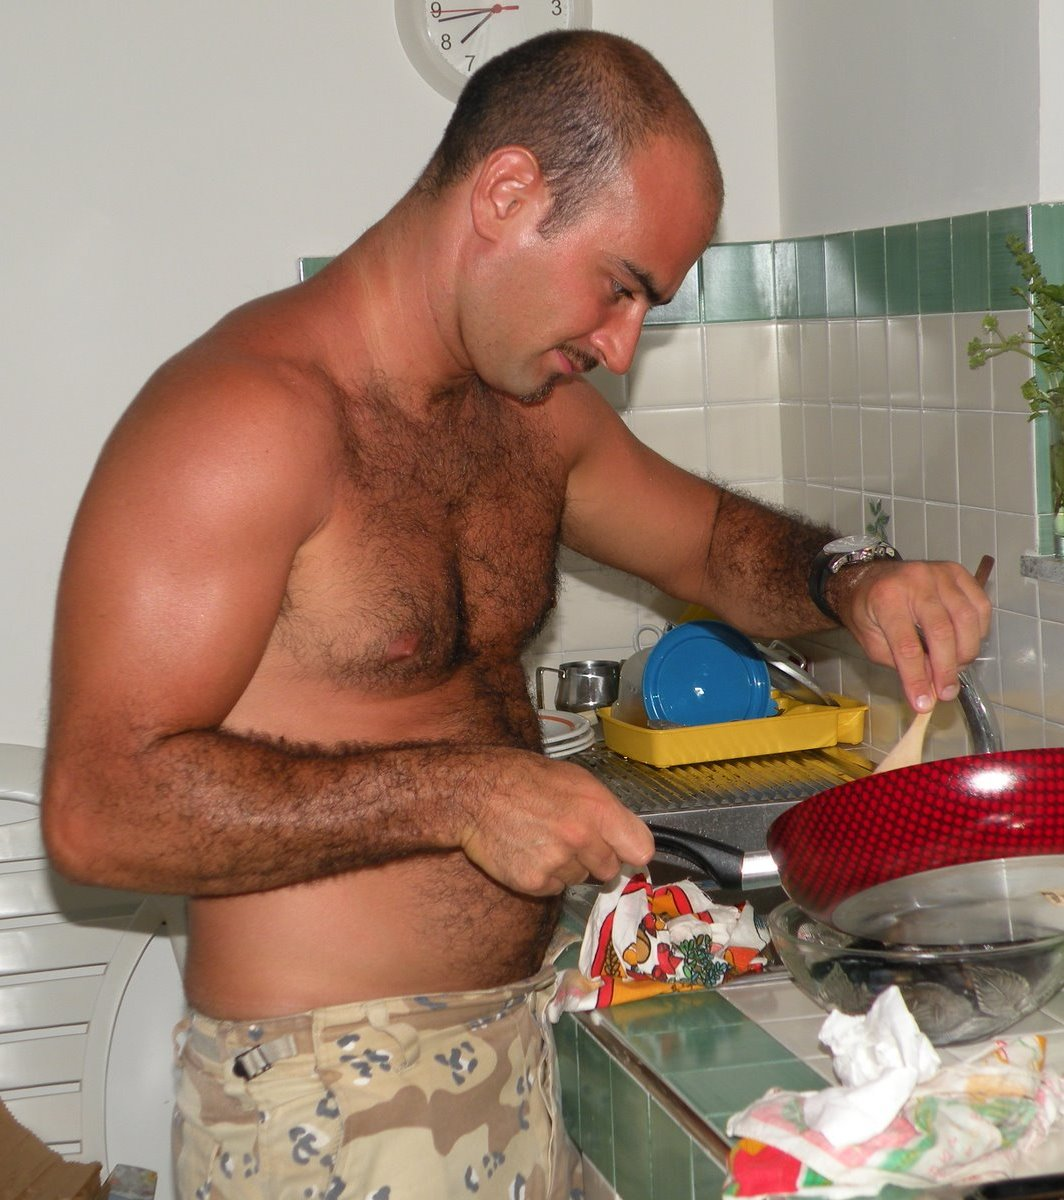 Furry Men Cooking Served Hot